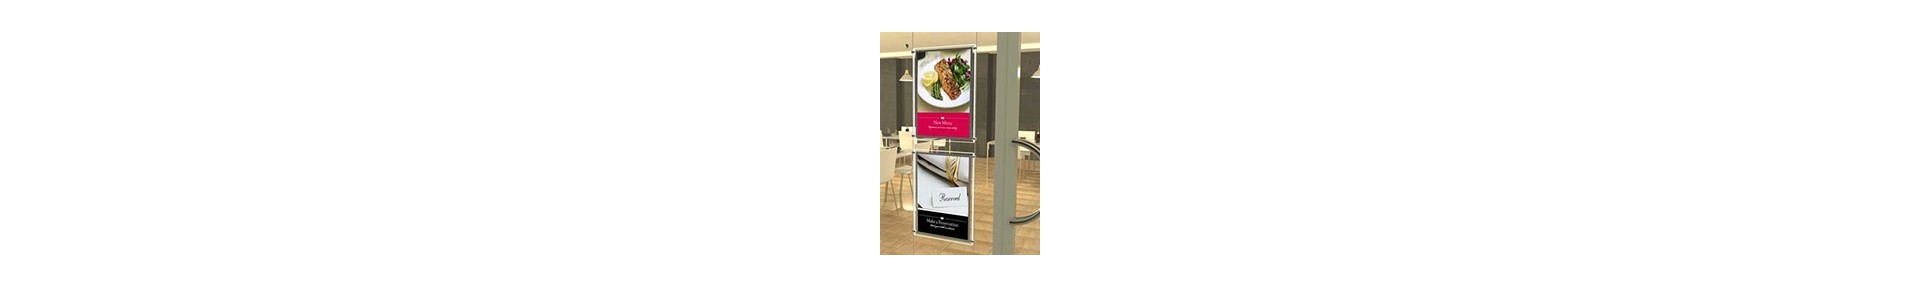 Cable and Rod Display Systems | Cable Poster Displays | Wall Graphics